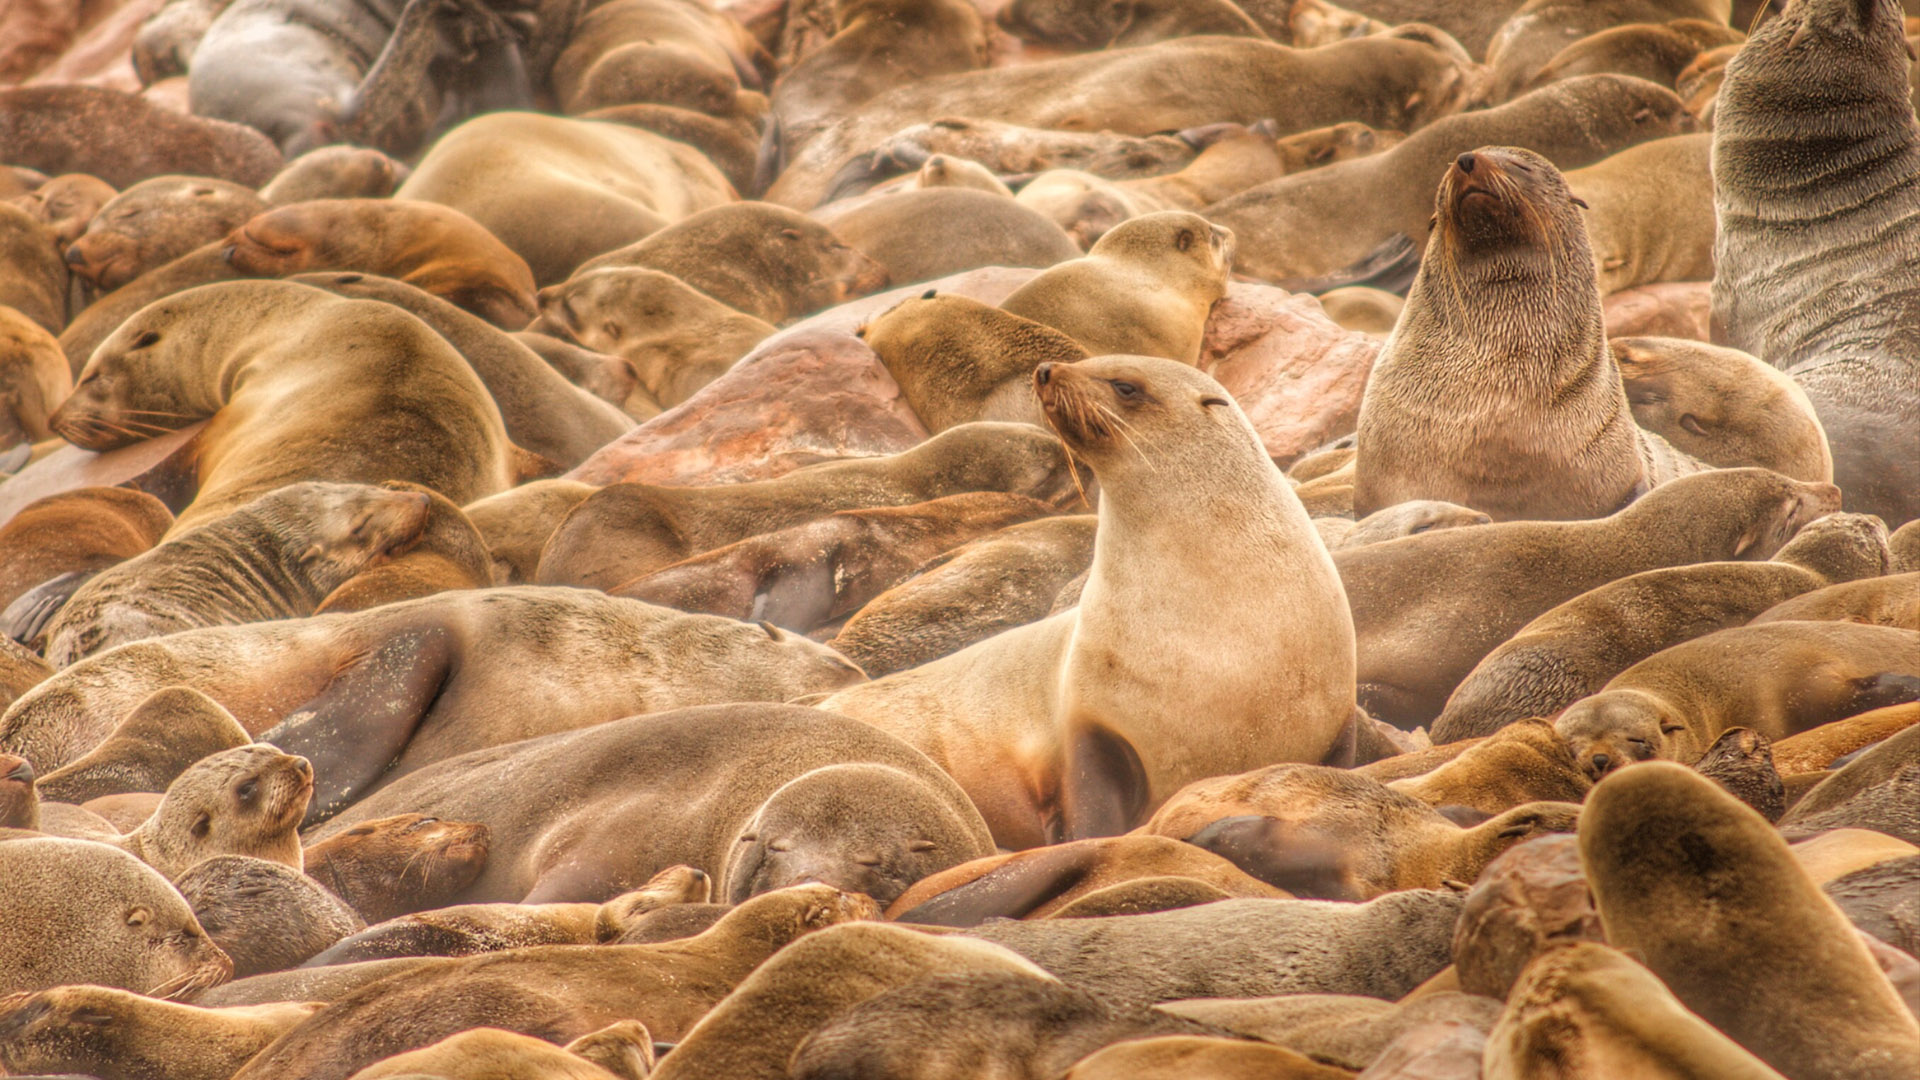 Seals at Cape Cross in South Africa by Russ MacLaughlin